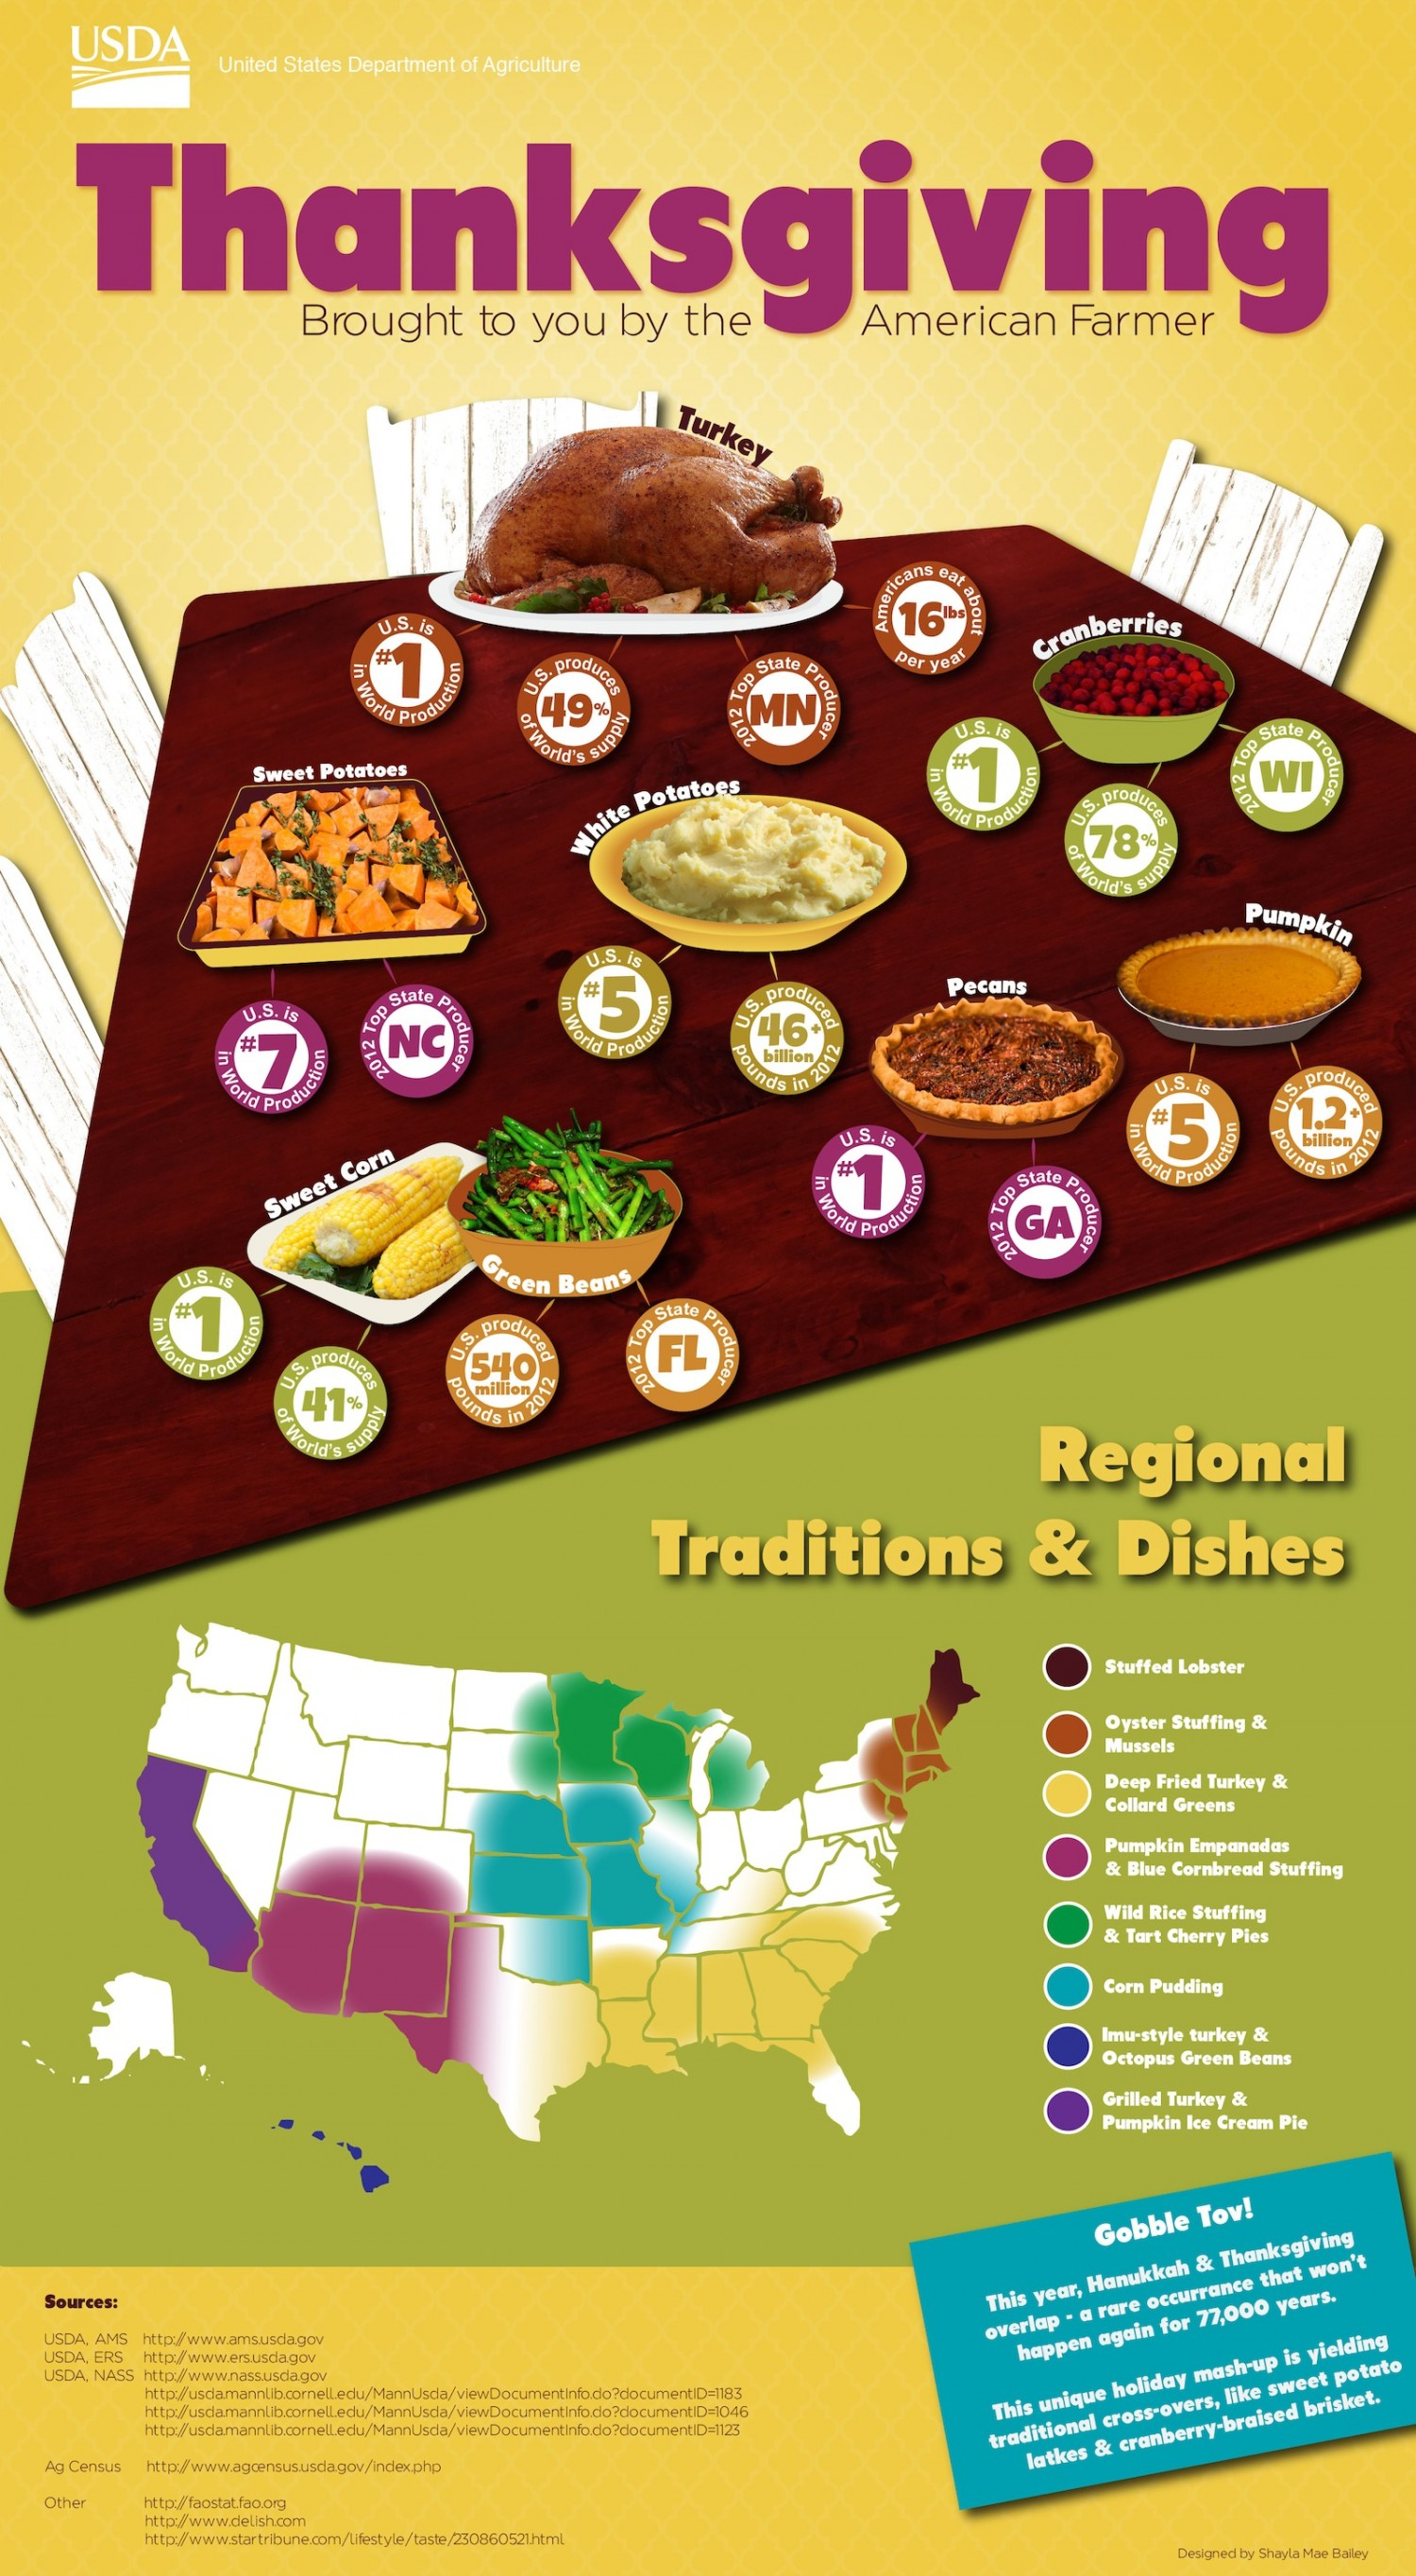 thanksgiving--brought-to-you-by-the-american-farmer_5295fceb5b6f7_w1500